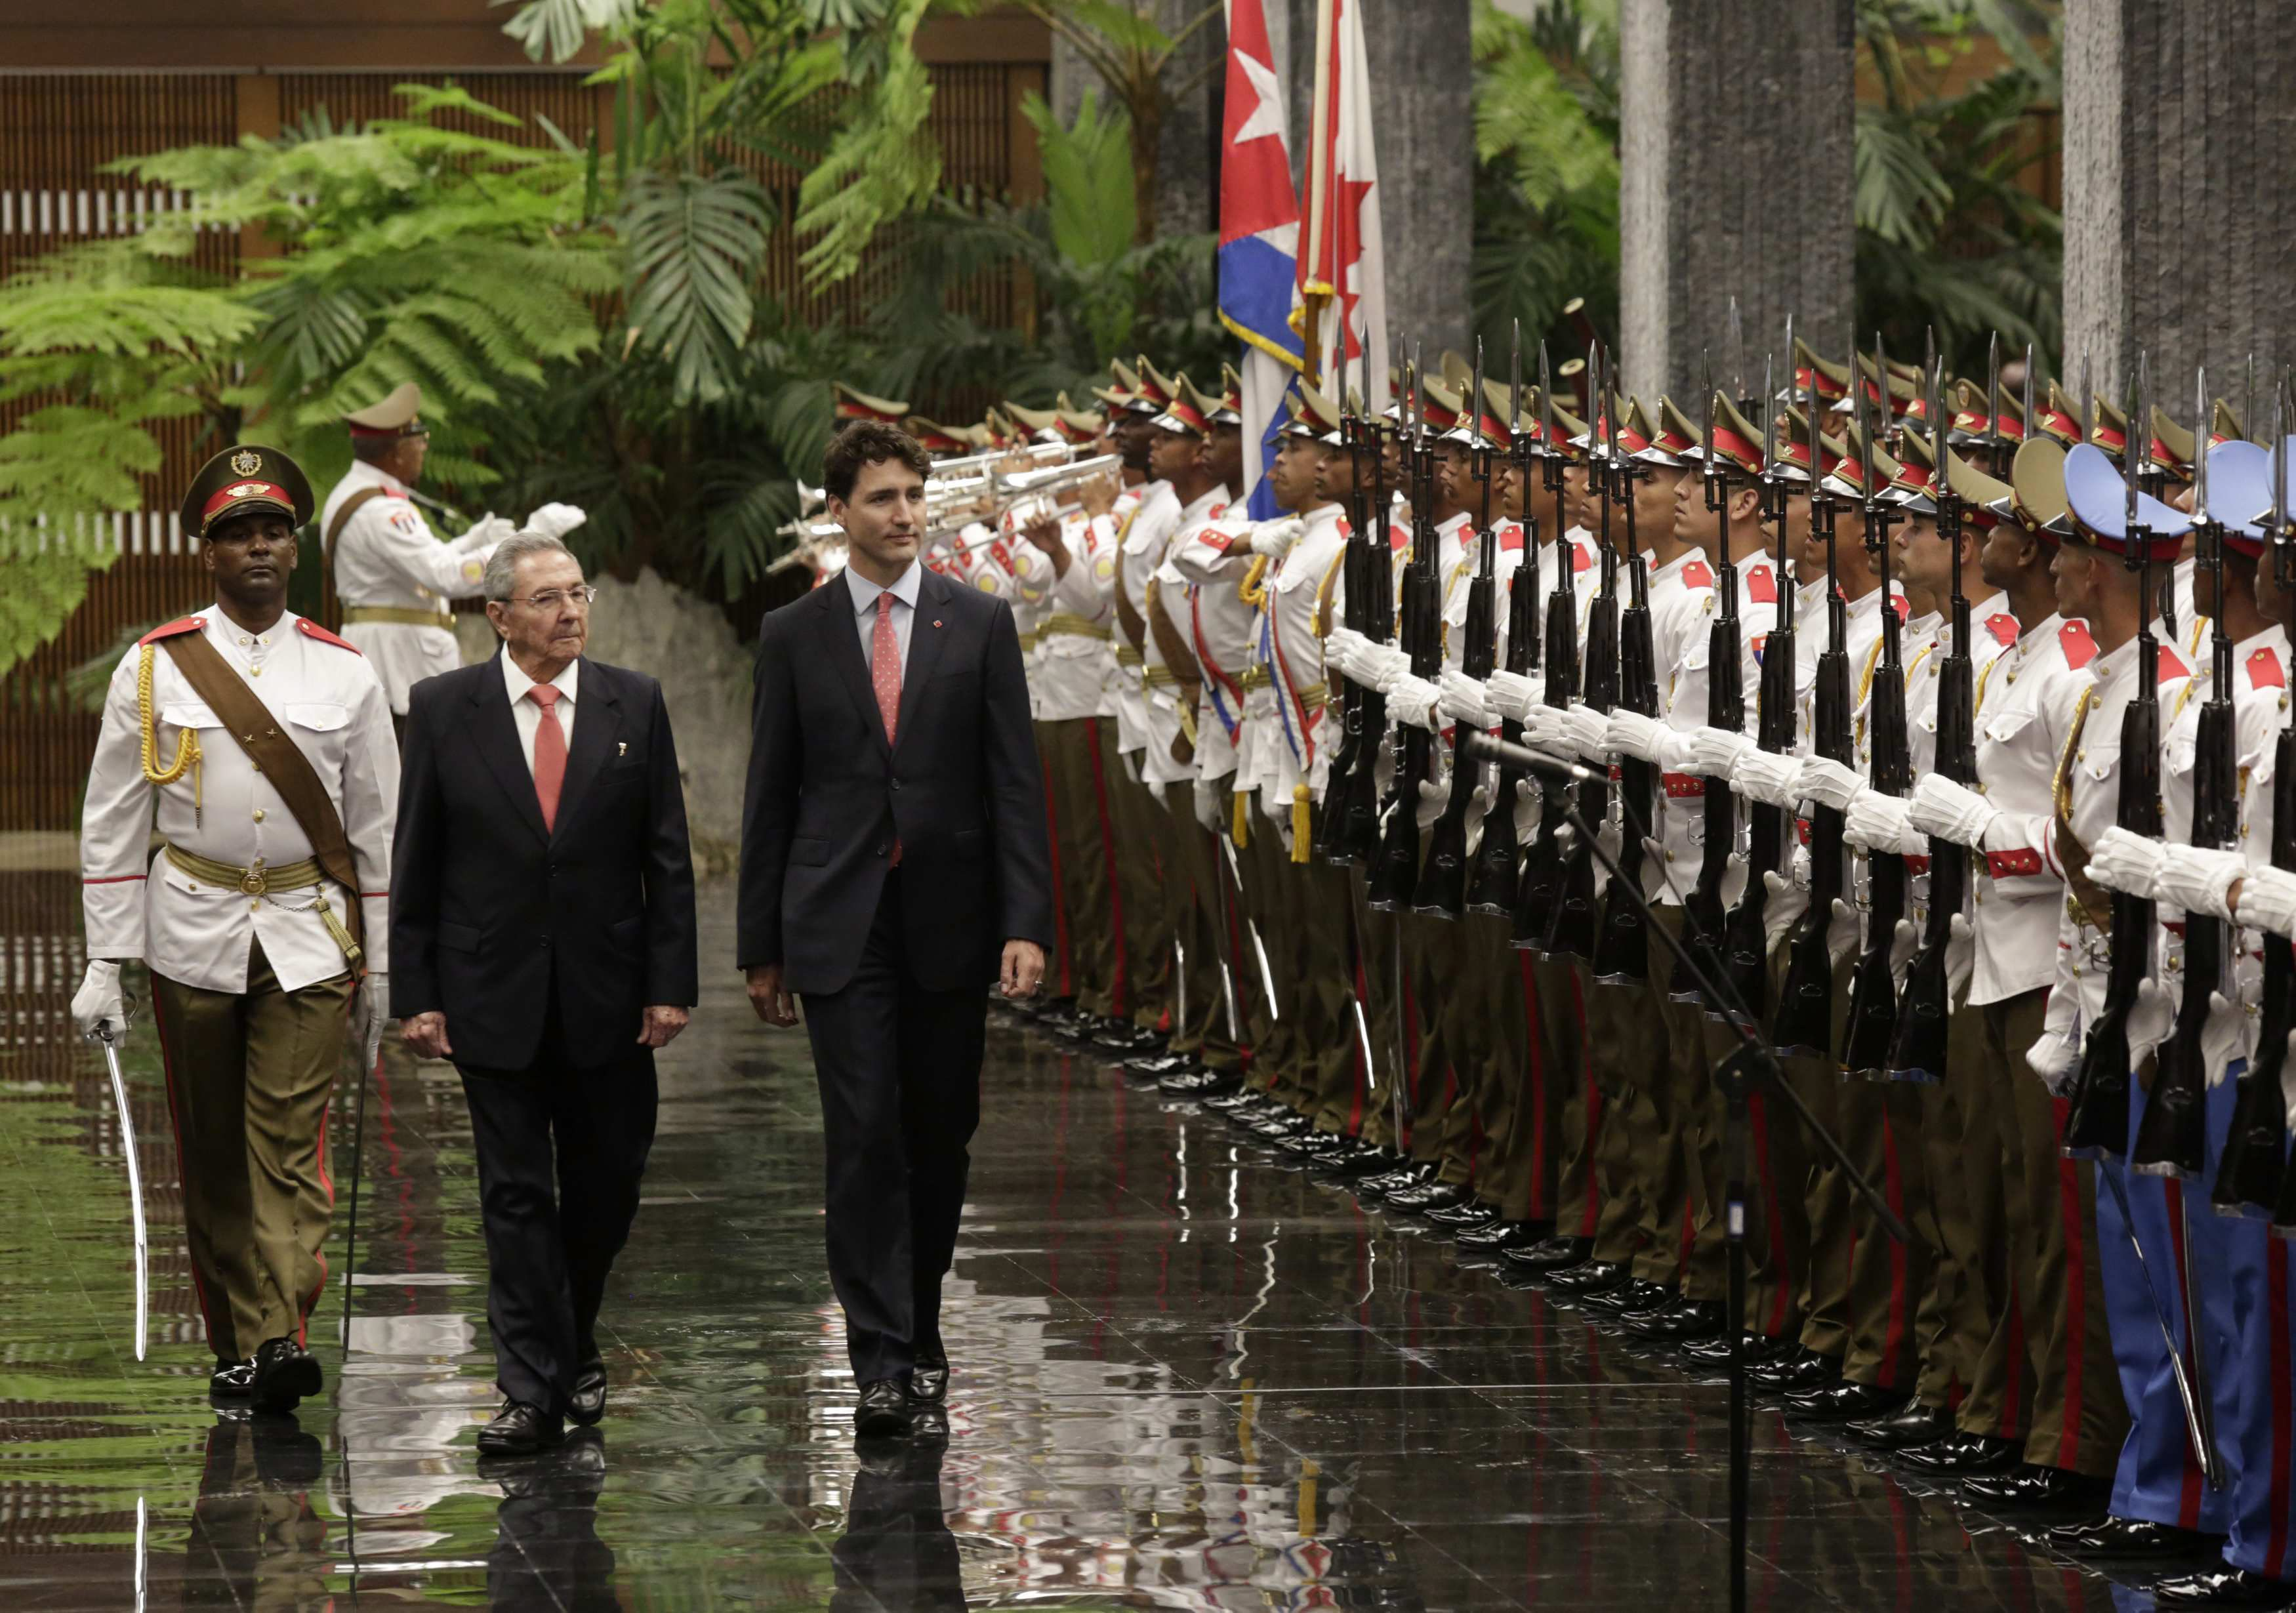 Cuba s president raul castro left and canada prime minister justin trudeau review troops